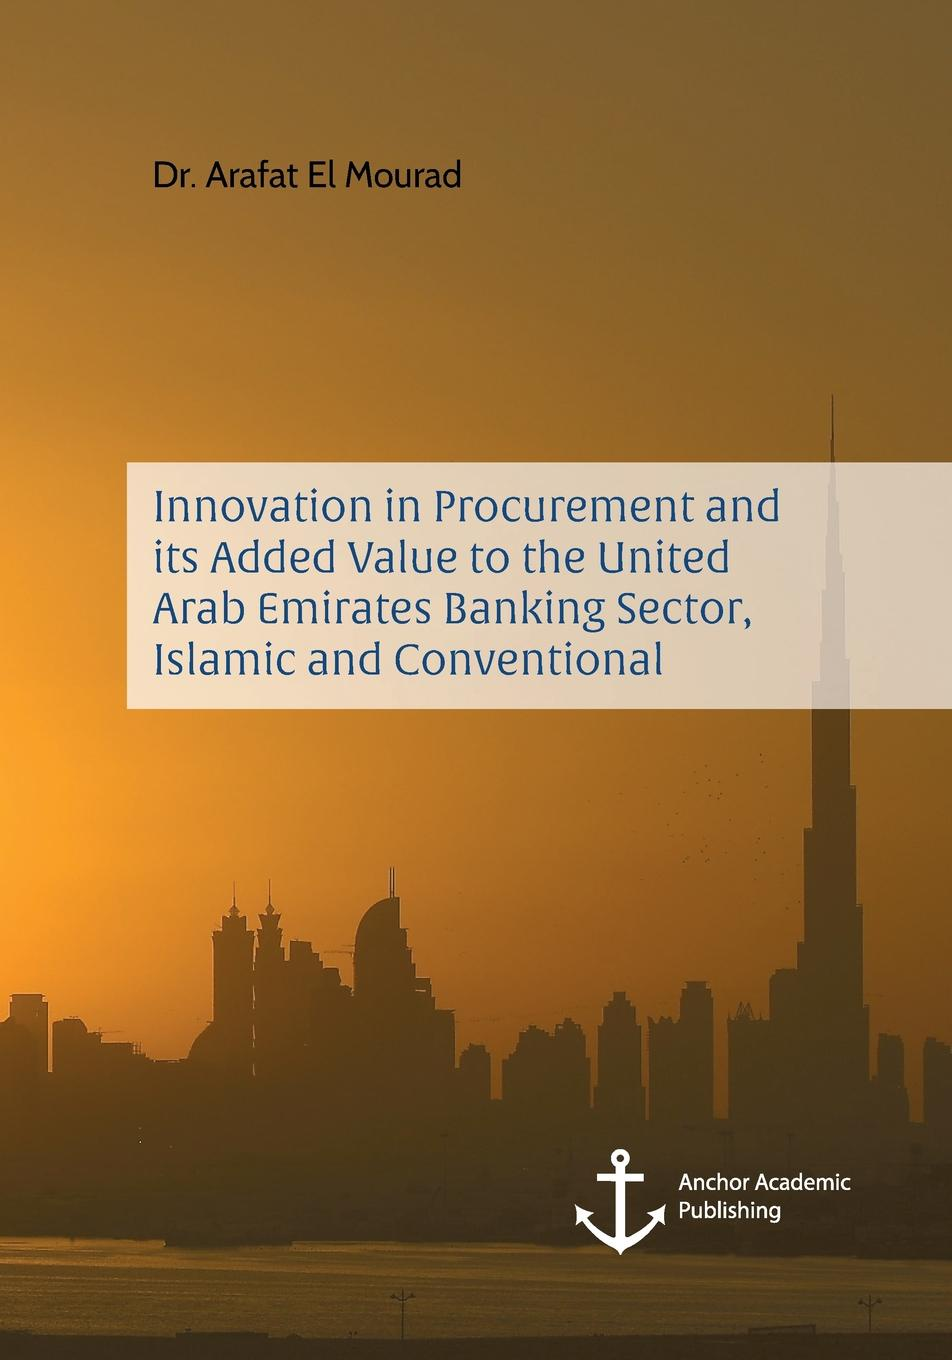 Arafat El Mourad Innovation in Procurement and its Added Value to the United Arab Emirates Banking Sector, Islamic and Conventional